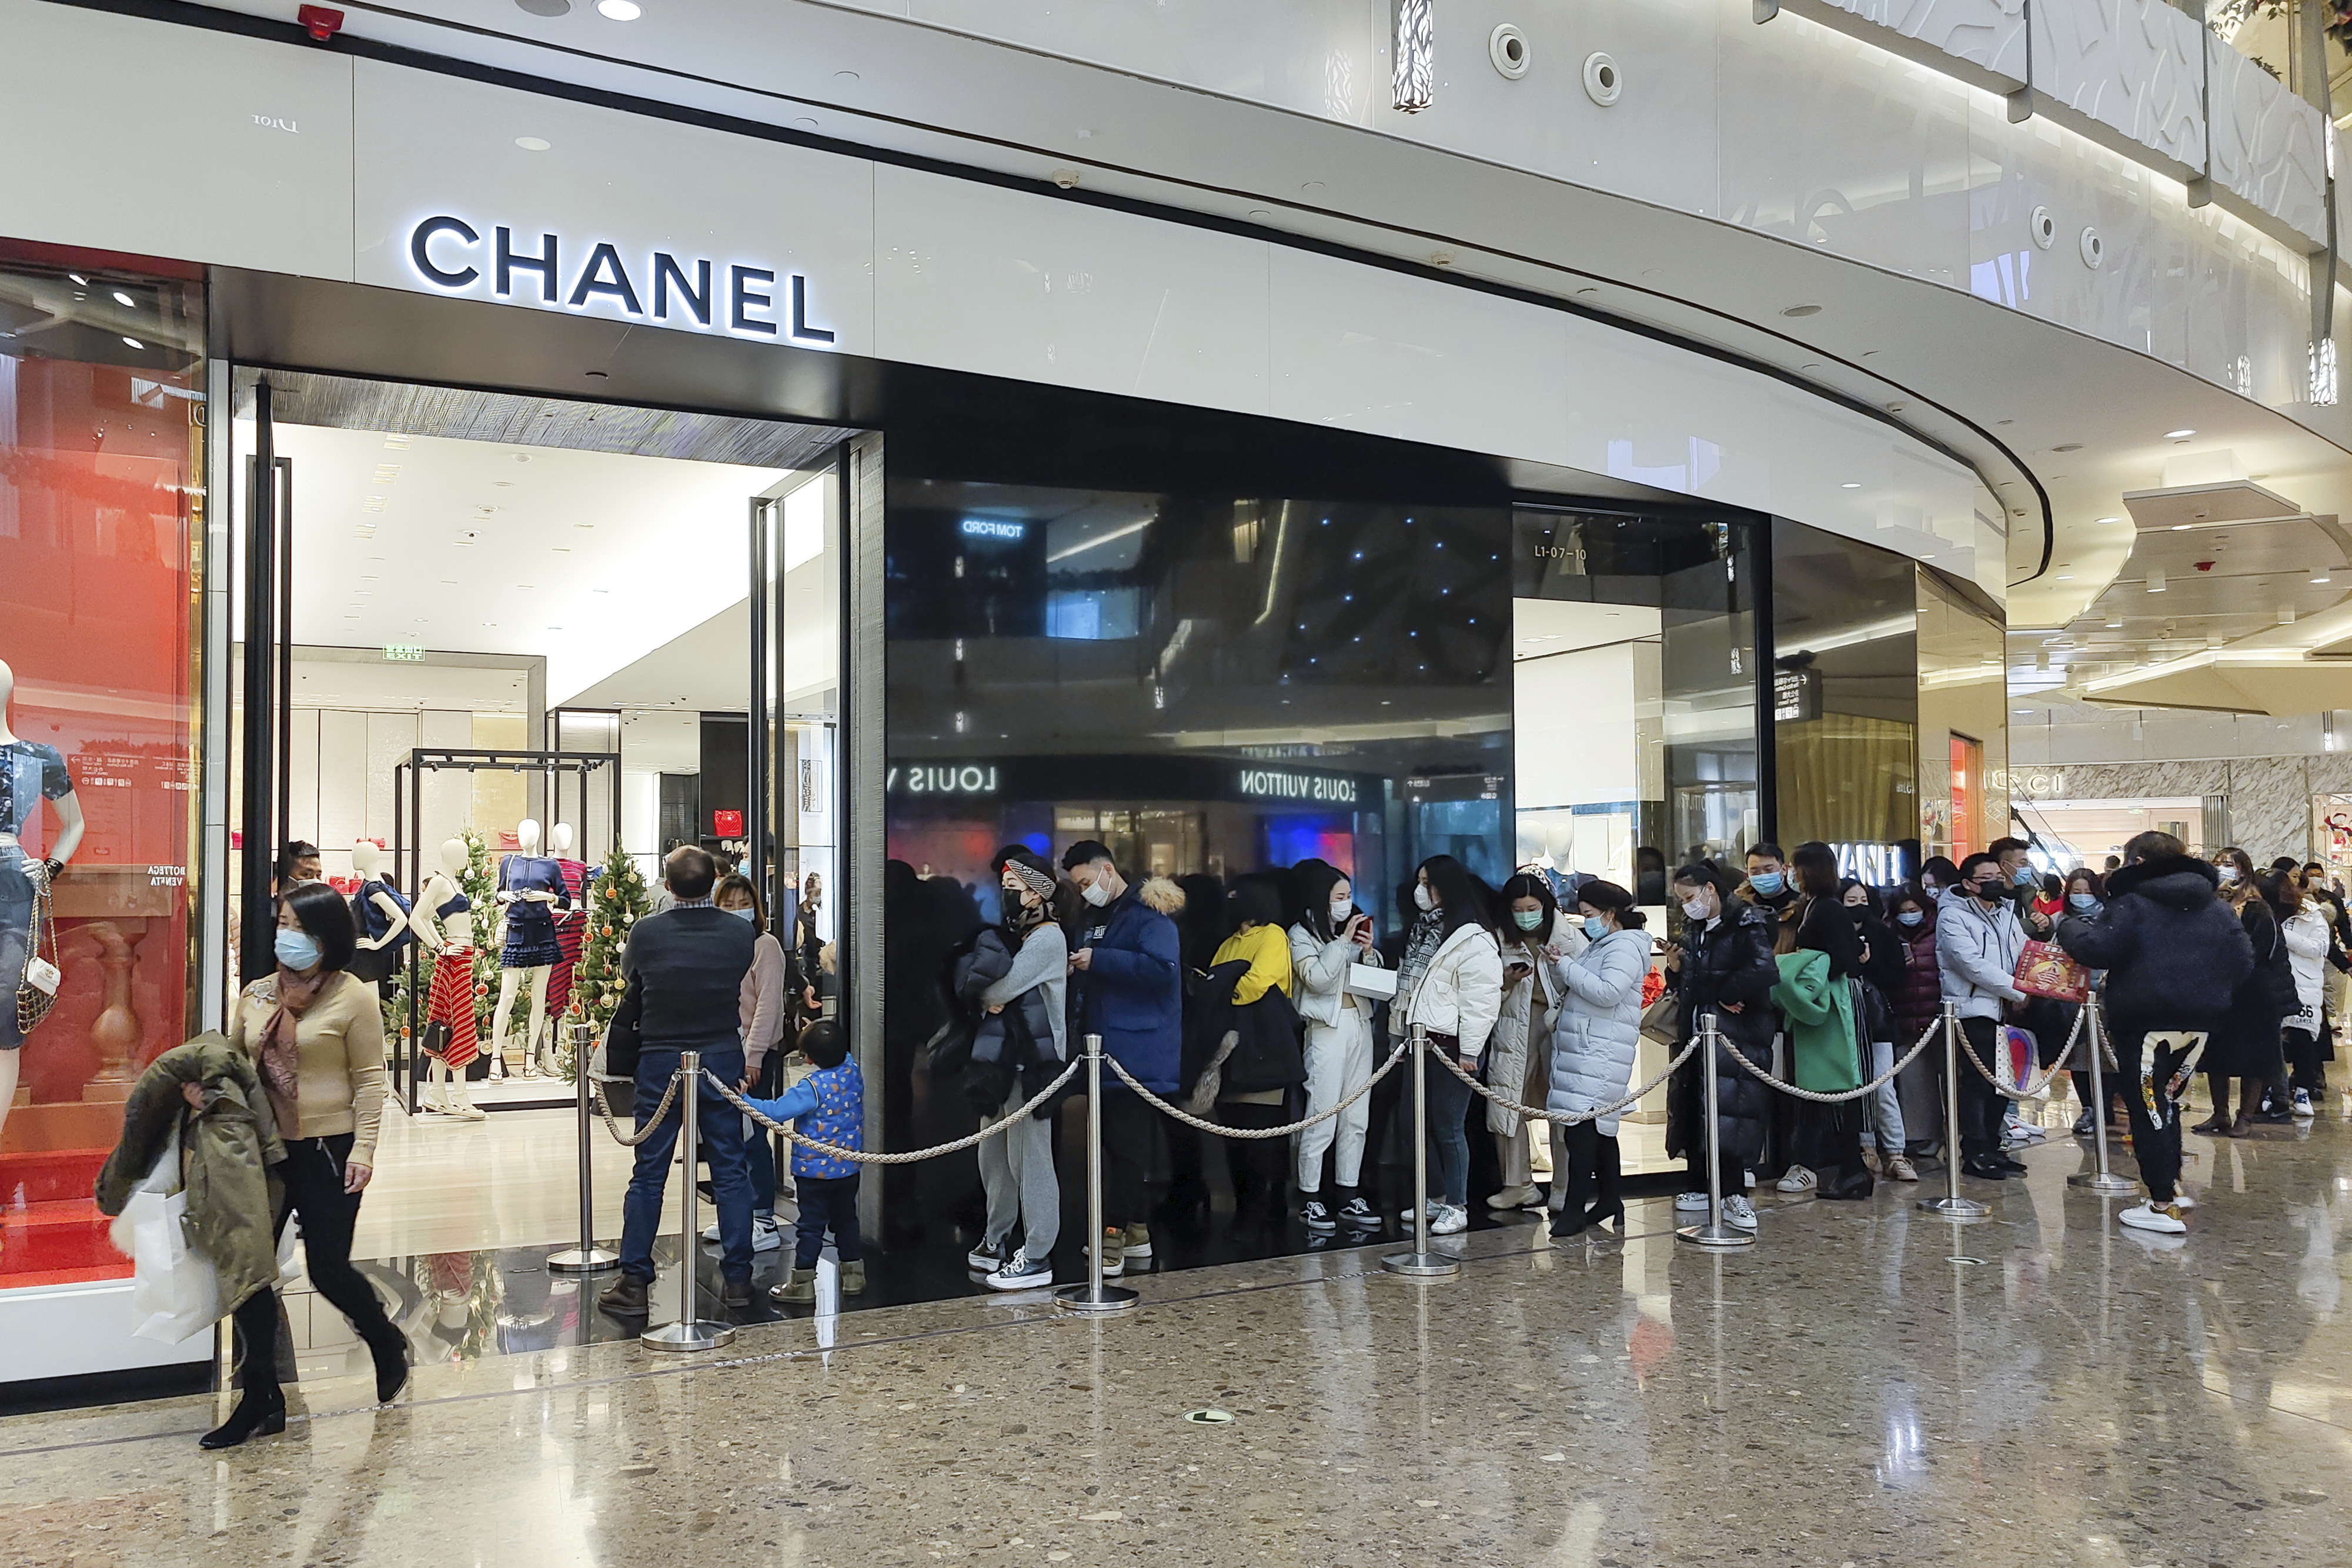 Shoppers line up outside a Chanel store in Shanghai, China on the last day of 2020.